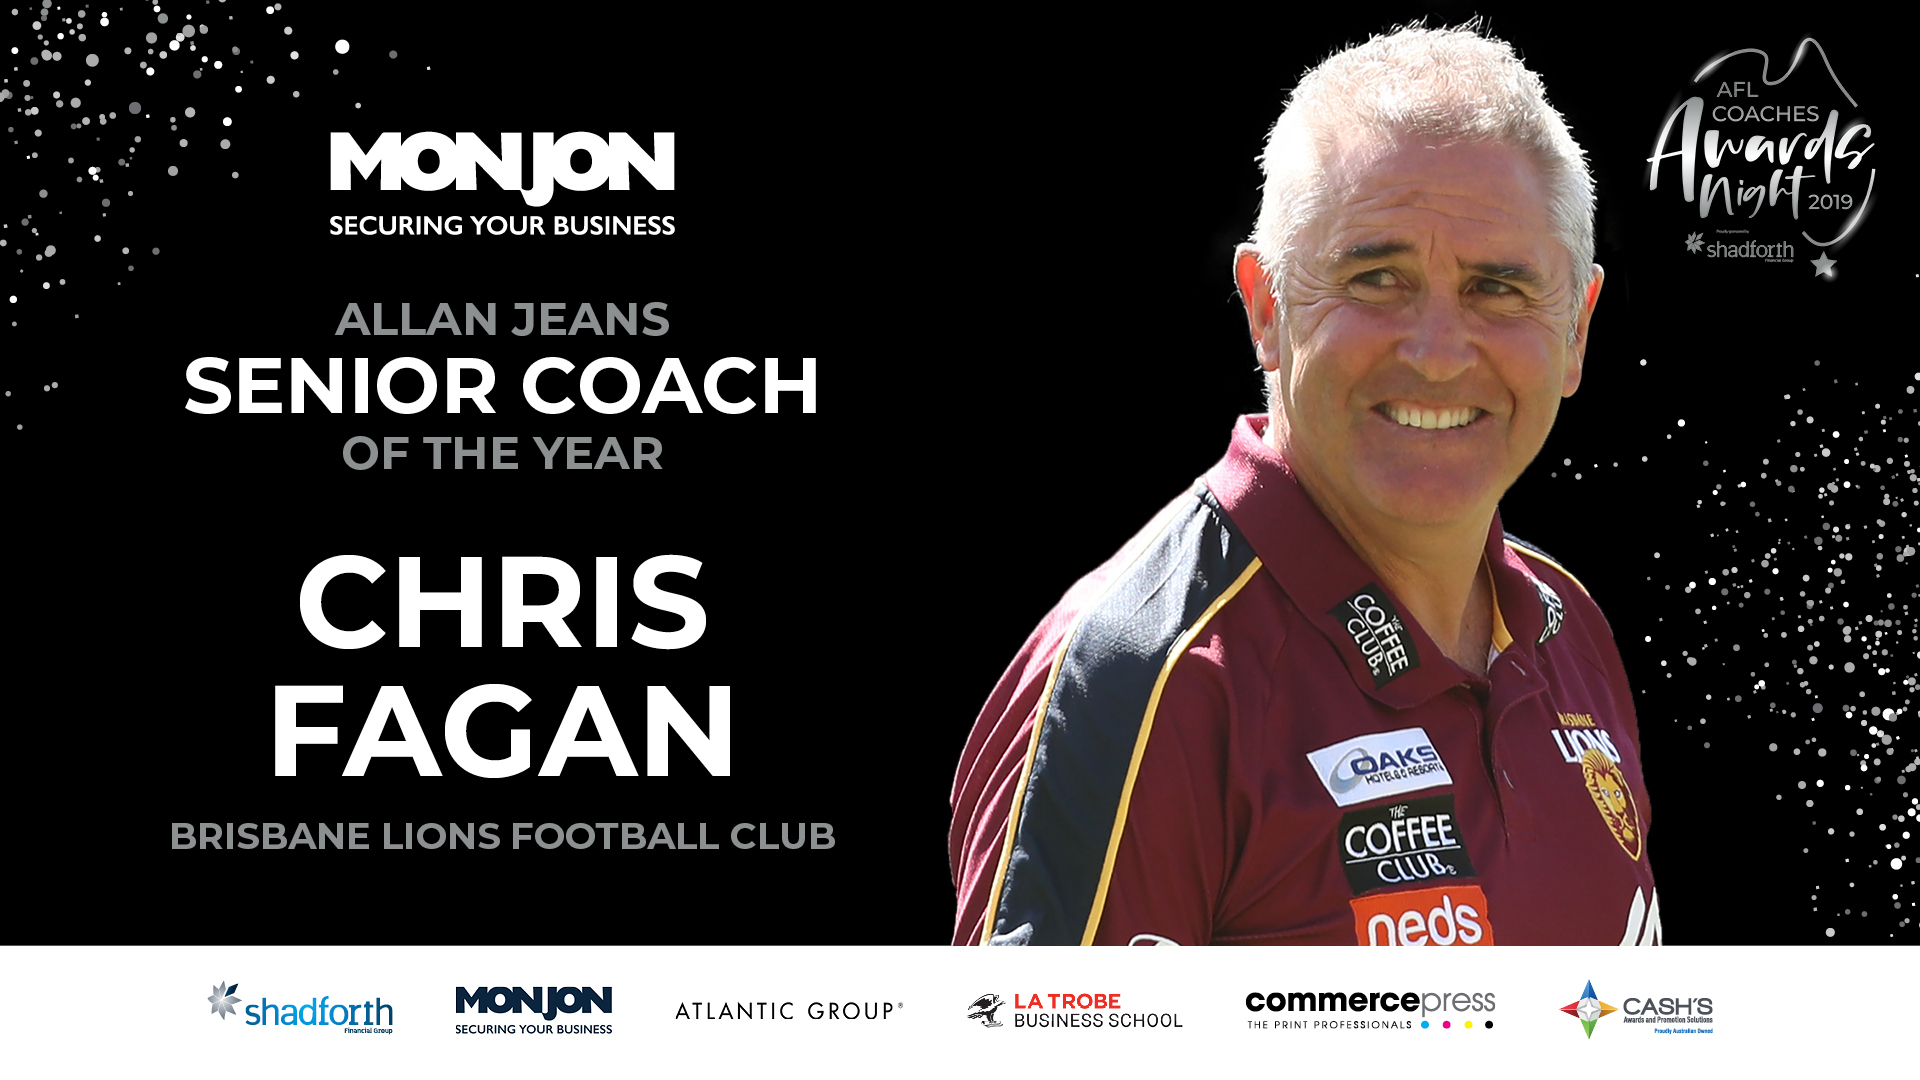 Monjon Allan Jeans Senior Coach of the Year